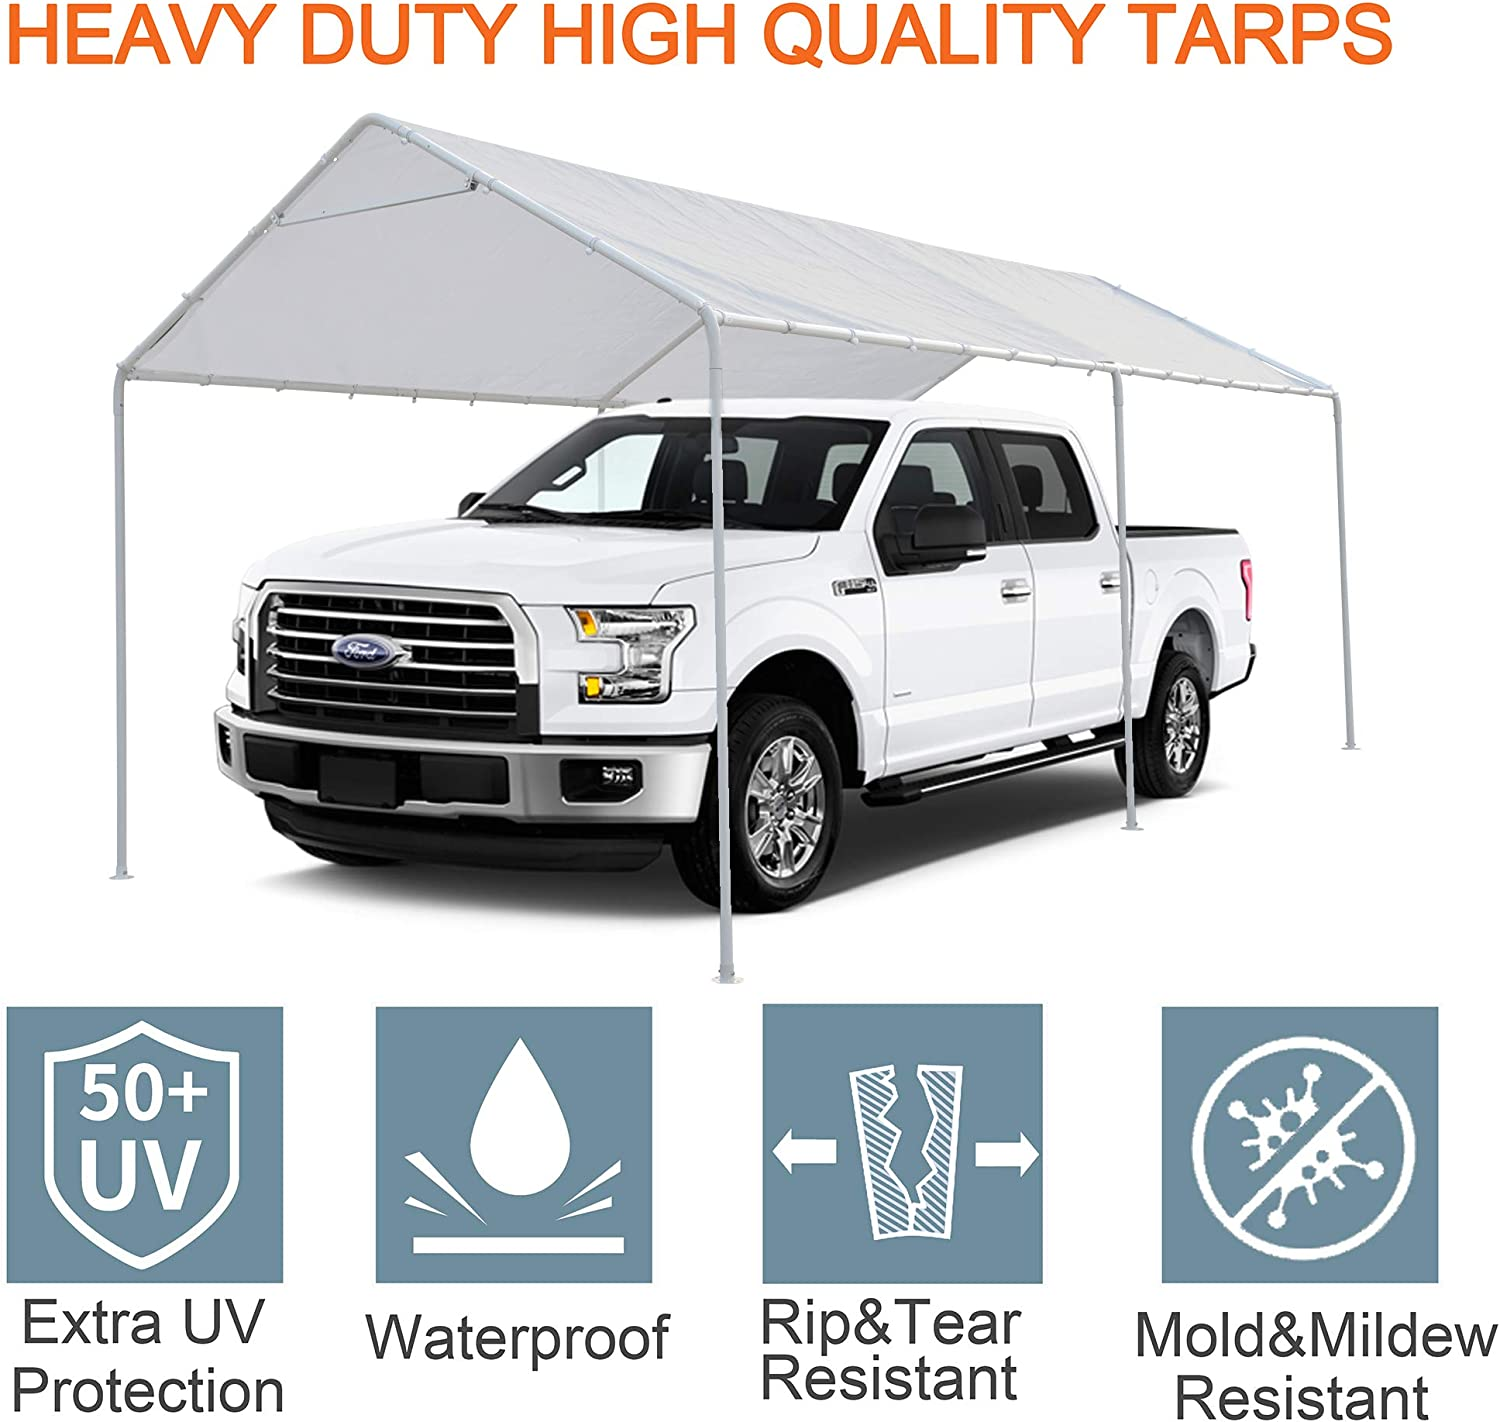 Thanaddo 10 x 20 Ft Carport Replacement Canopy Cover with 48 Free Ball Bungee Cords Garage Top Tent Shelter Tarp with Ball Bungee Cords,White Only Cover, Frame Not Included